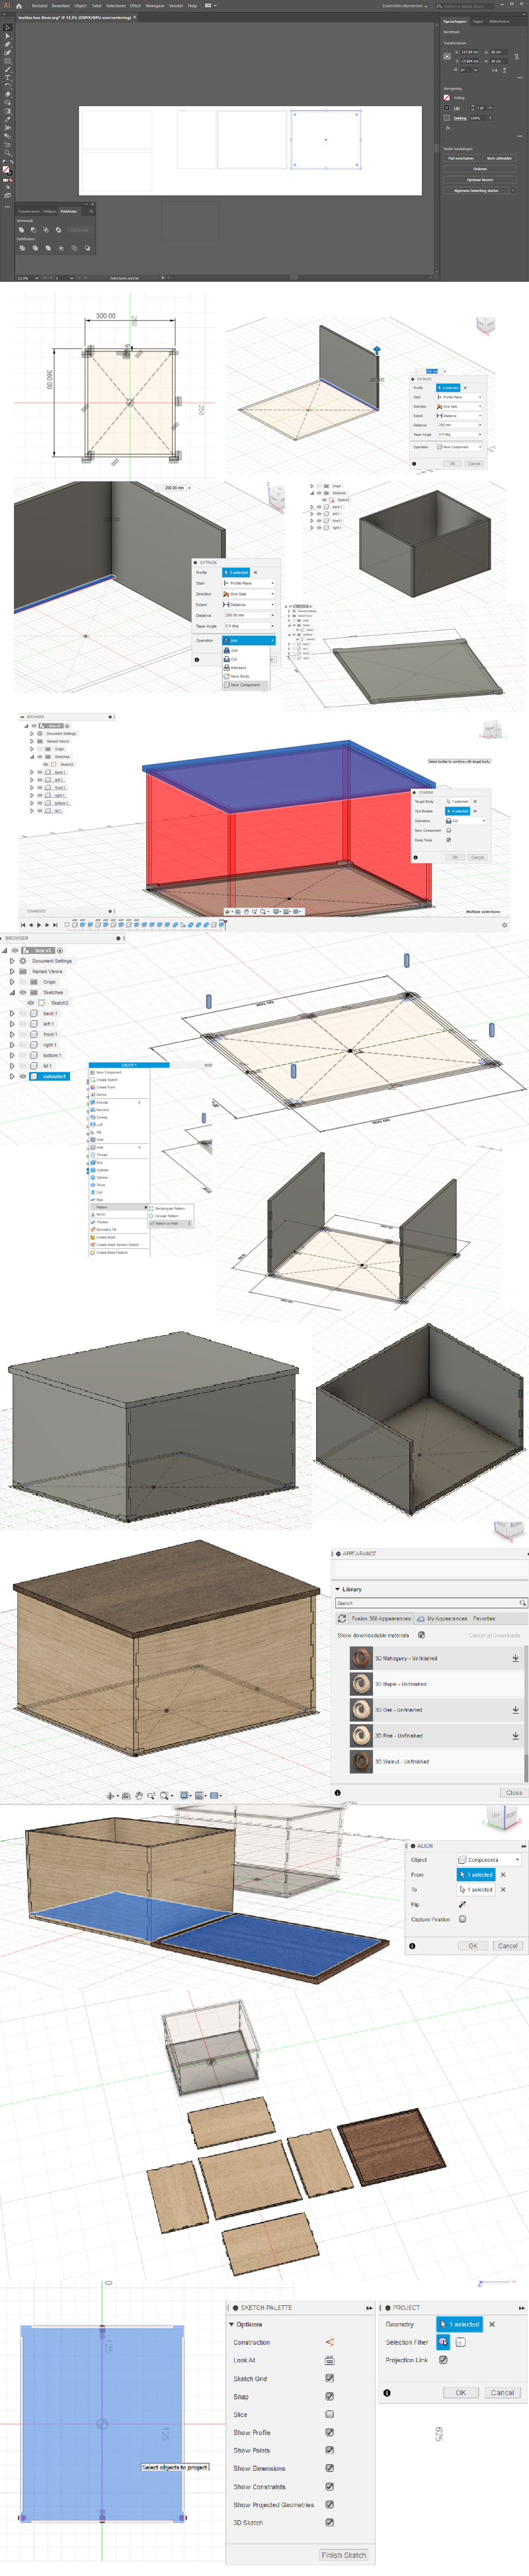 Process of using Fusion360 to create a model of a box